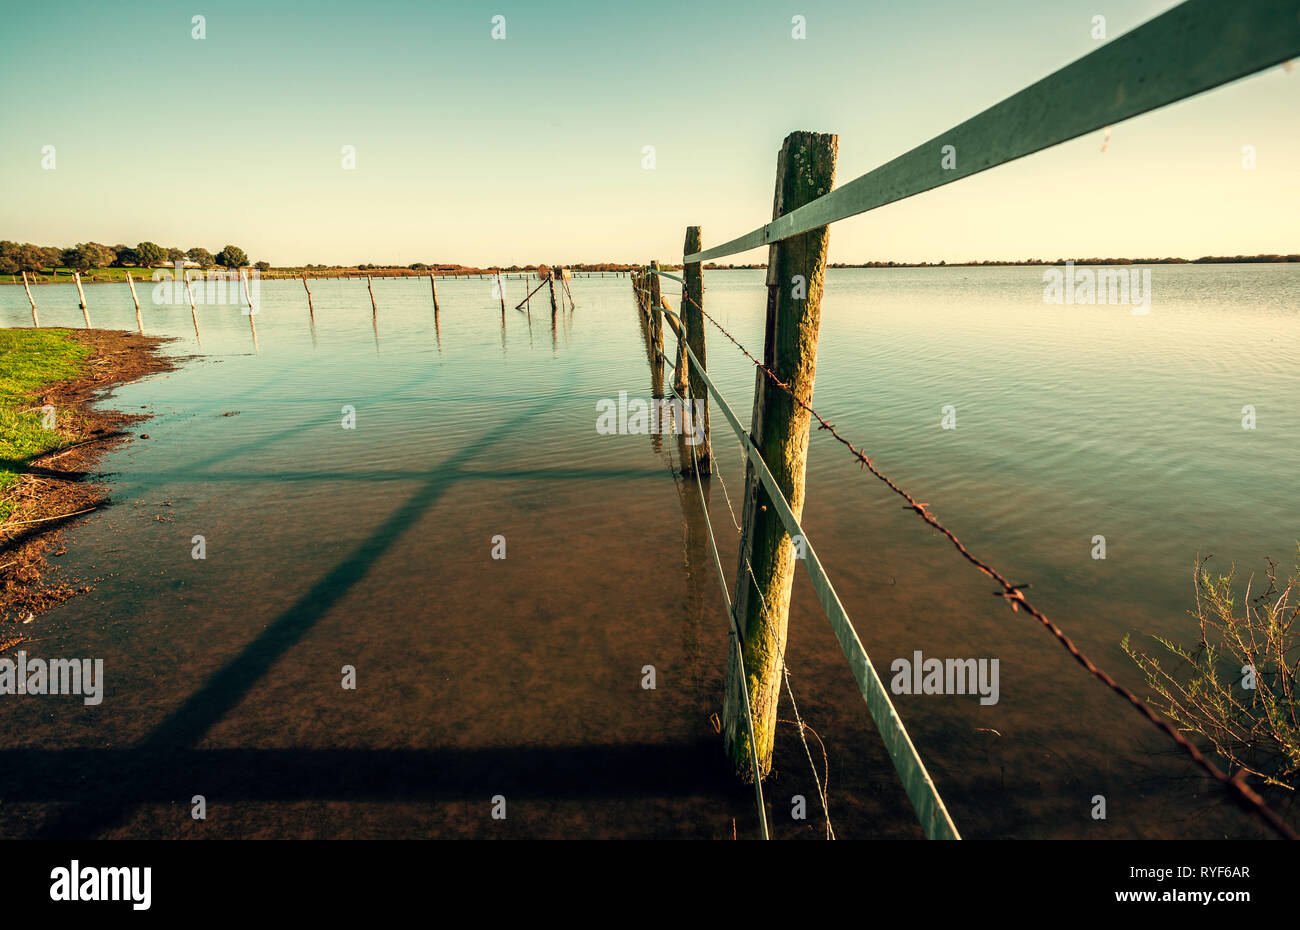 Old rusty barbed wire fence and wooden post against lake and sky - Stock Image